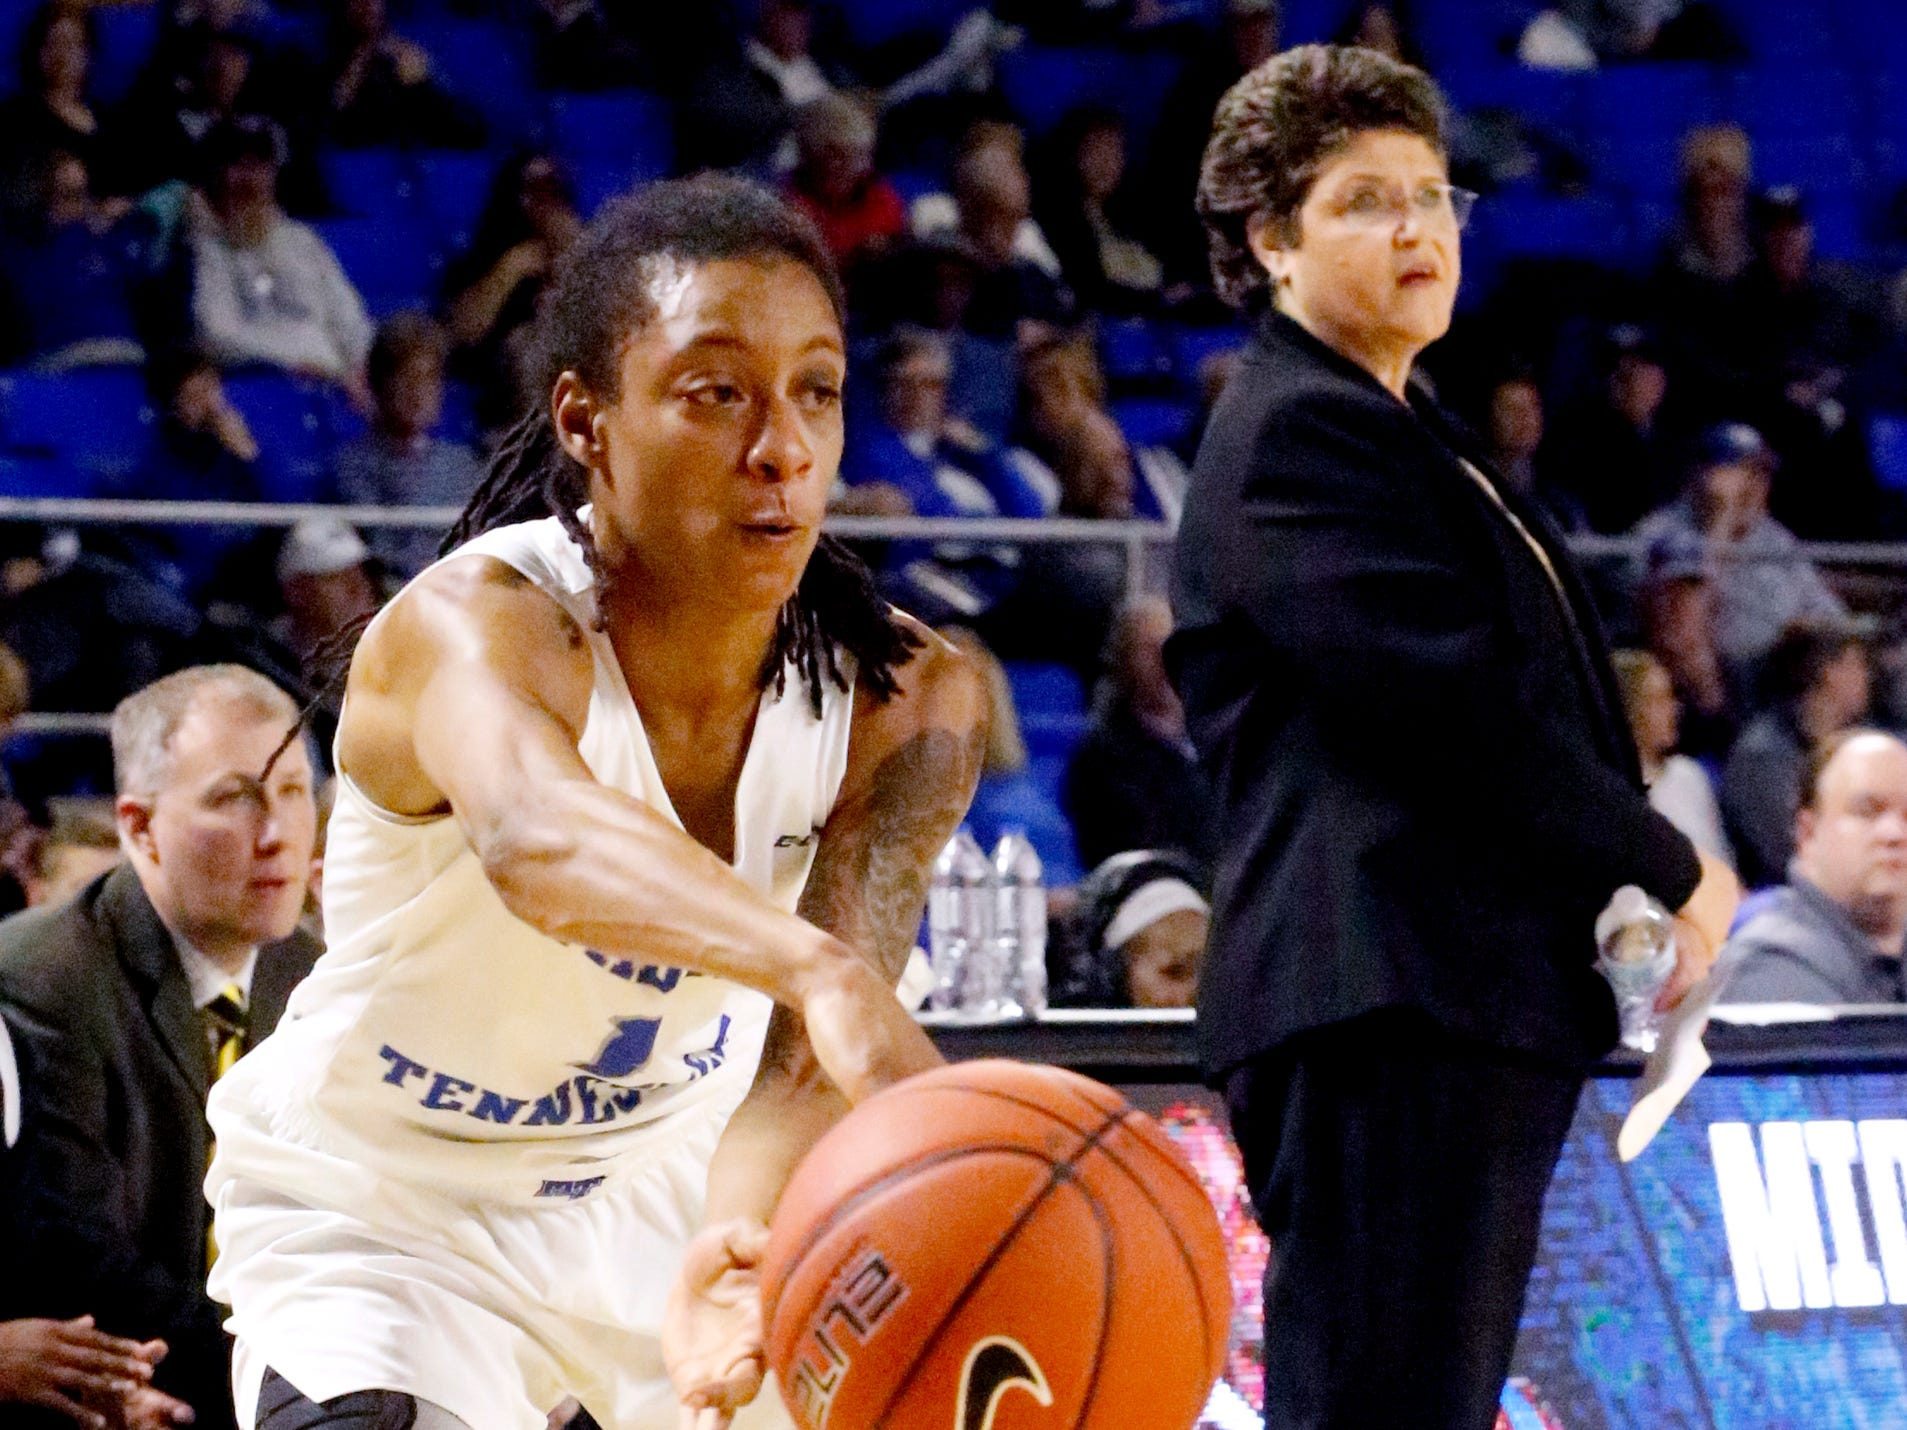 MTSU's guard A'Queen Hayes (1) passes the ball during the game against Southern Miss on Thursday Jan. 10, 2019.